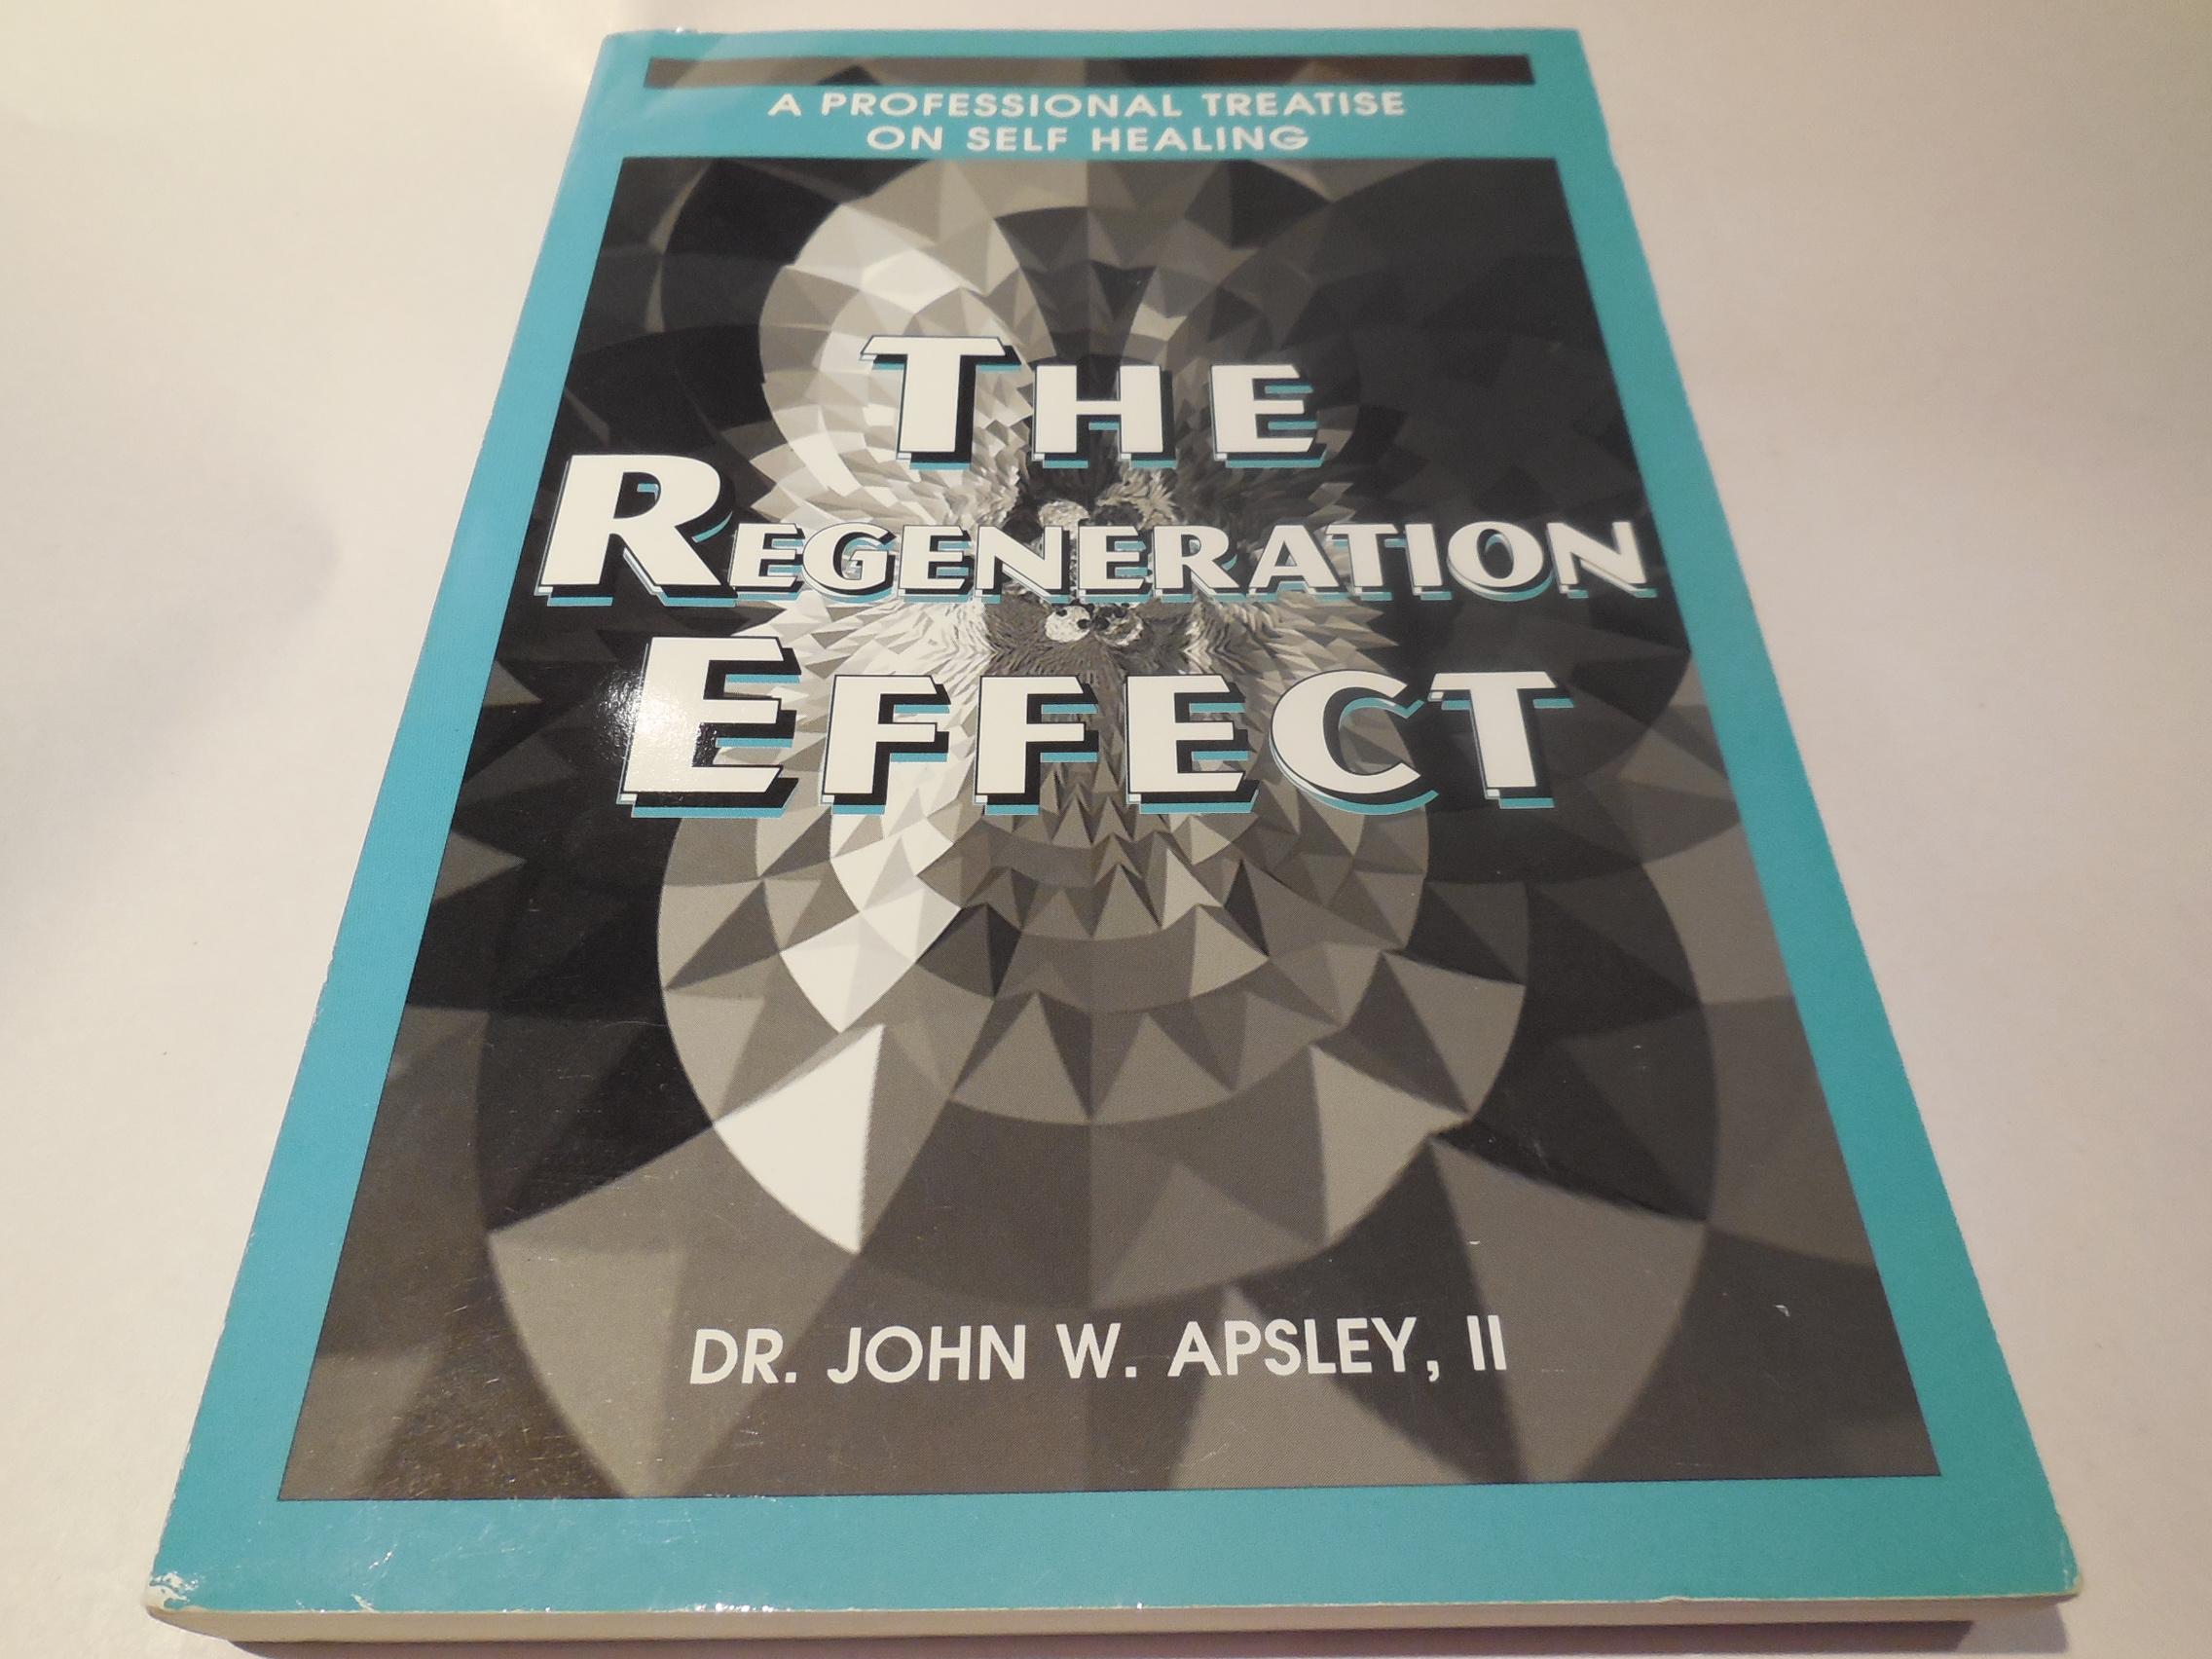 Image for The Regeneration Effect - A Professional Treatise on Self-Healing